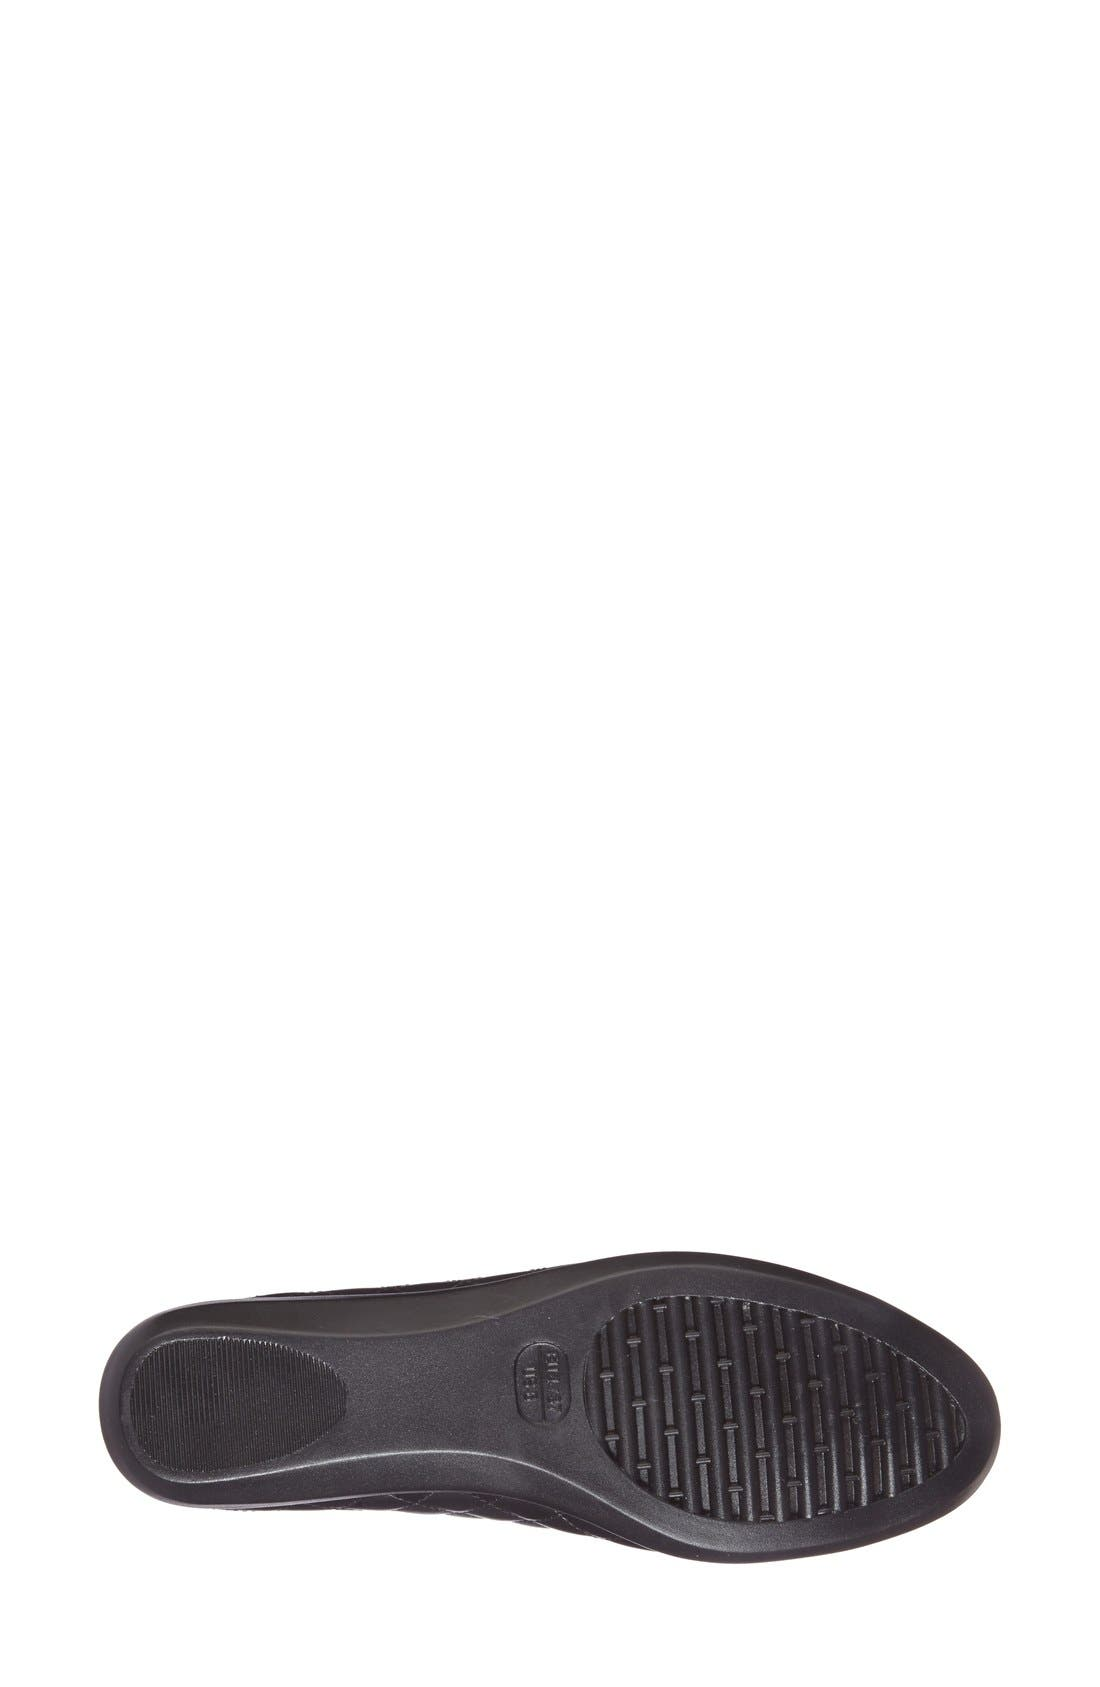 Alternate Image 4  - The FLEXX 'Rise a Smile' Quilted Leather Flat (Women)